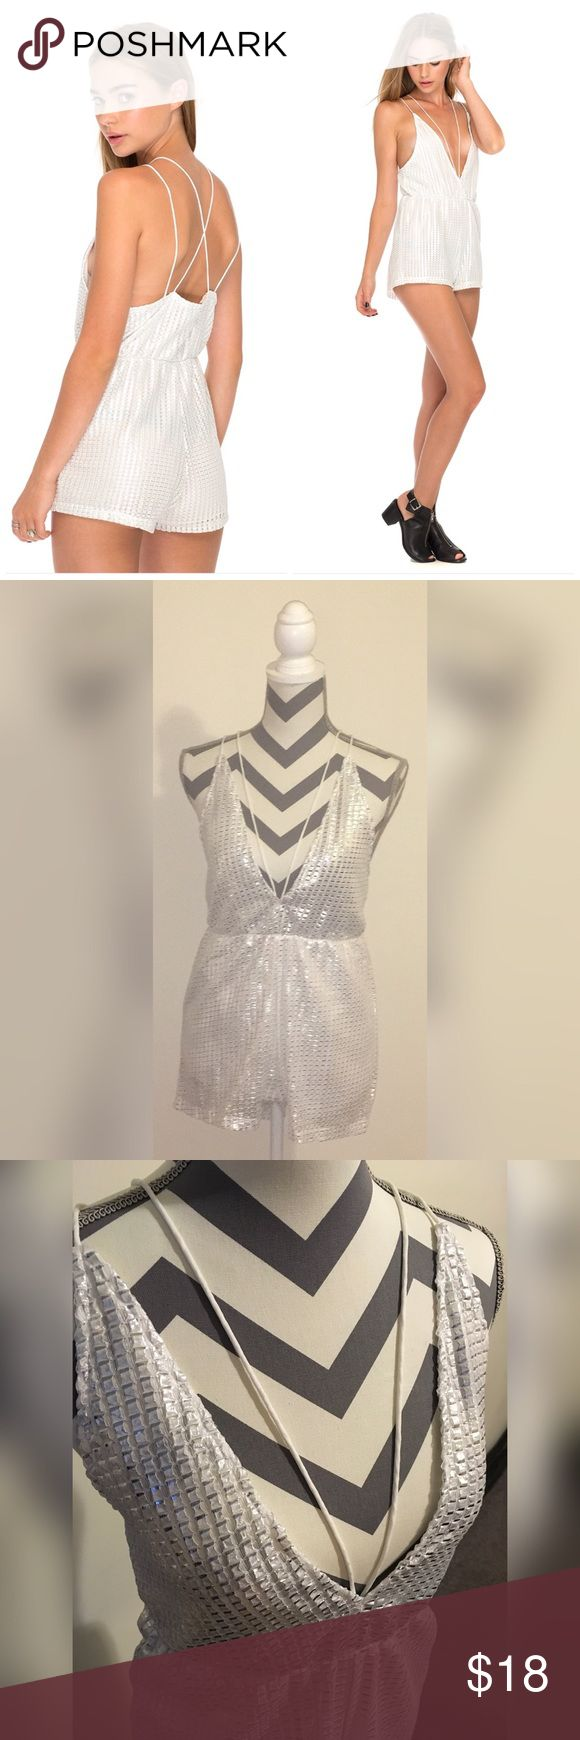 Motel Rocks Metallic Playsuit Summer is approaching ! Add this trendy piece to your wardrobe. Ibla metallic playsuit is cut low with cross straps in the back. Motel Rocks Other